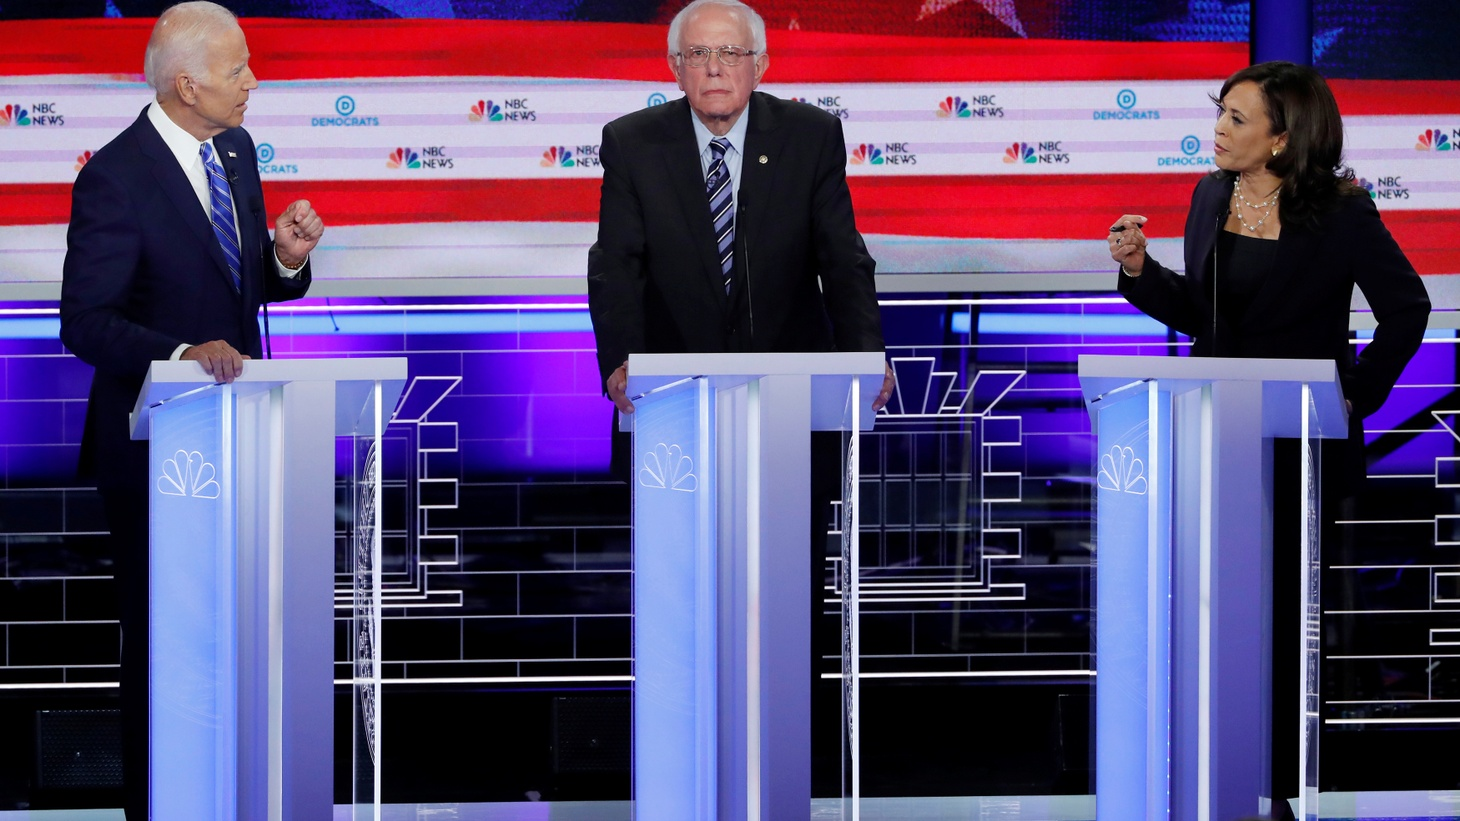 Former Vice President Joe Biden and Senator Kamala Harris debate racial issues as Senator Bernie Sanders listens during the second night of the first U.S. Democratic presidential candidates 2020 election debate in Miami, Florida, U.S., June 27, 2019.